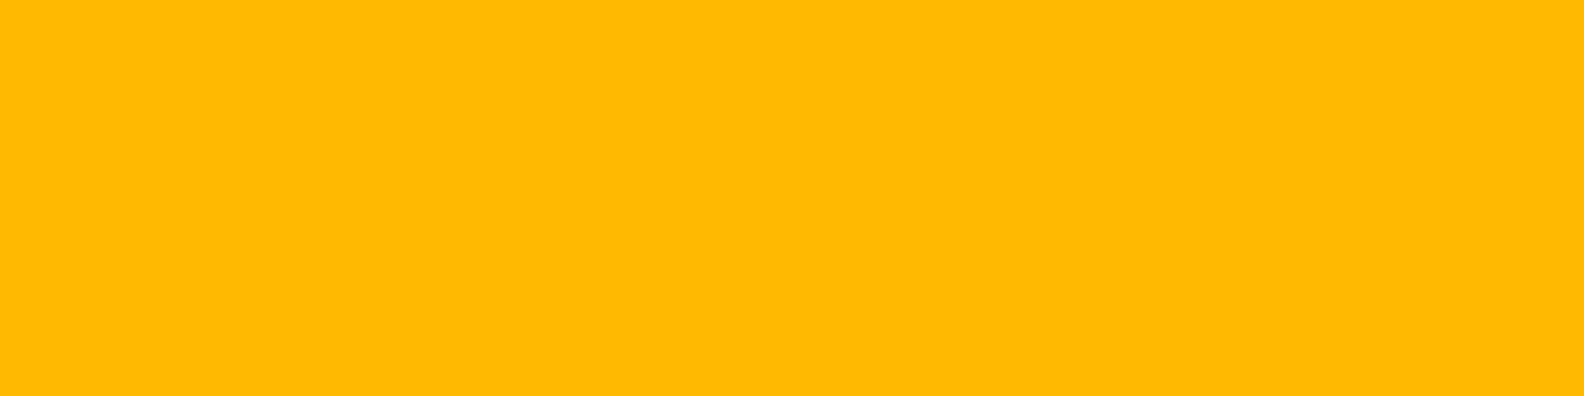 1584x396 Selective Yellow Solid Color Background